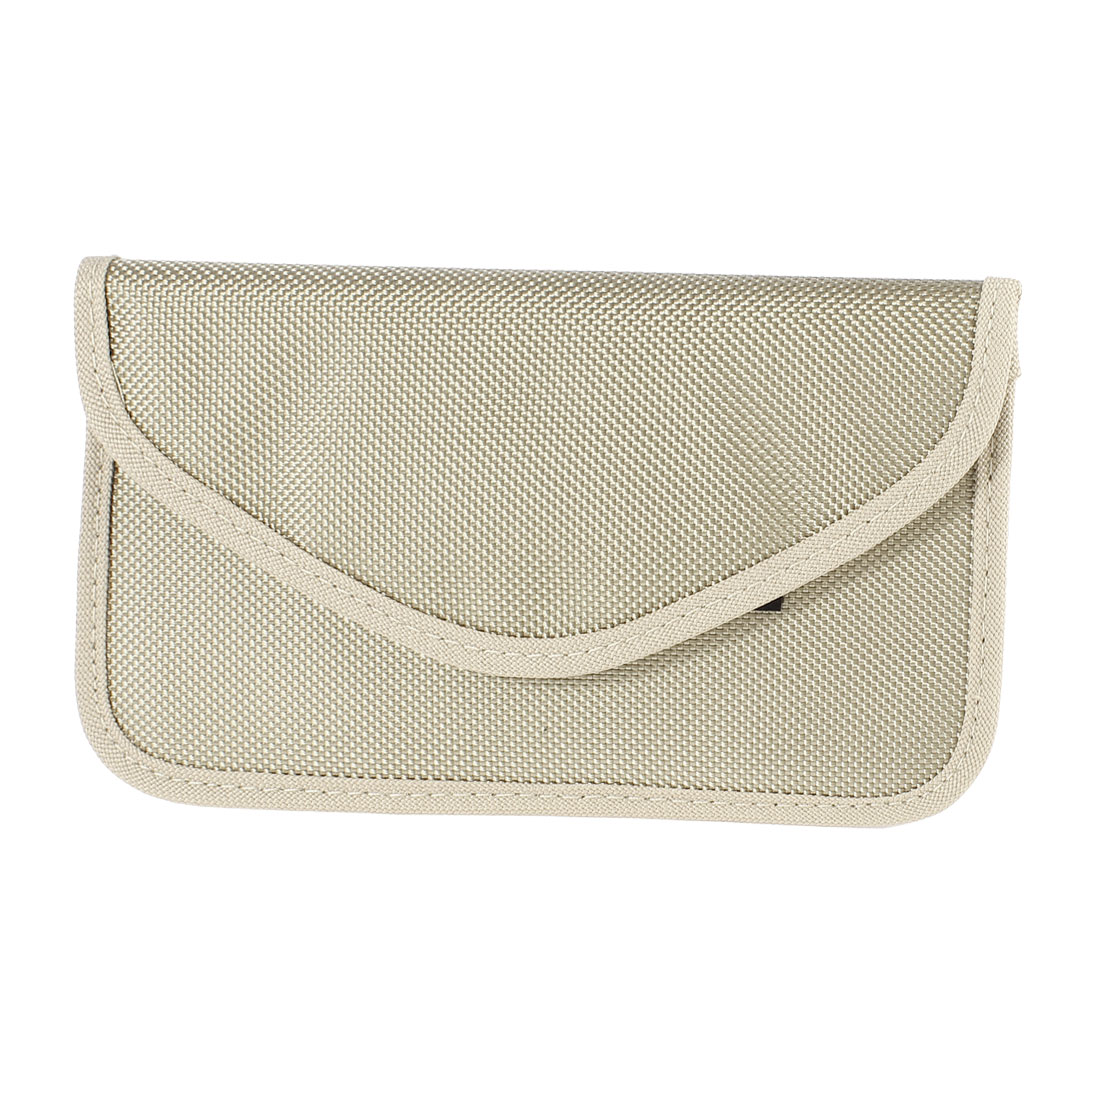 Cell Phone Textured Cloth Pouch Case Bag Holder Beige